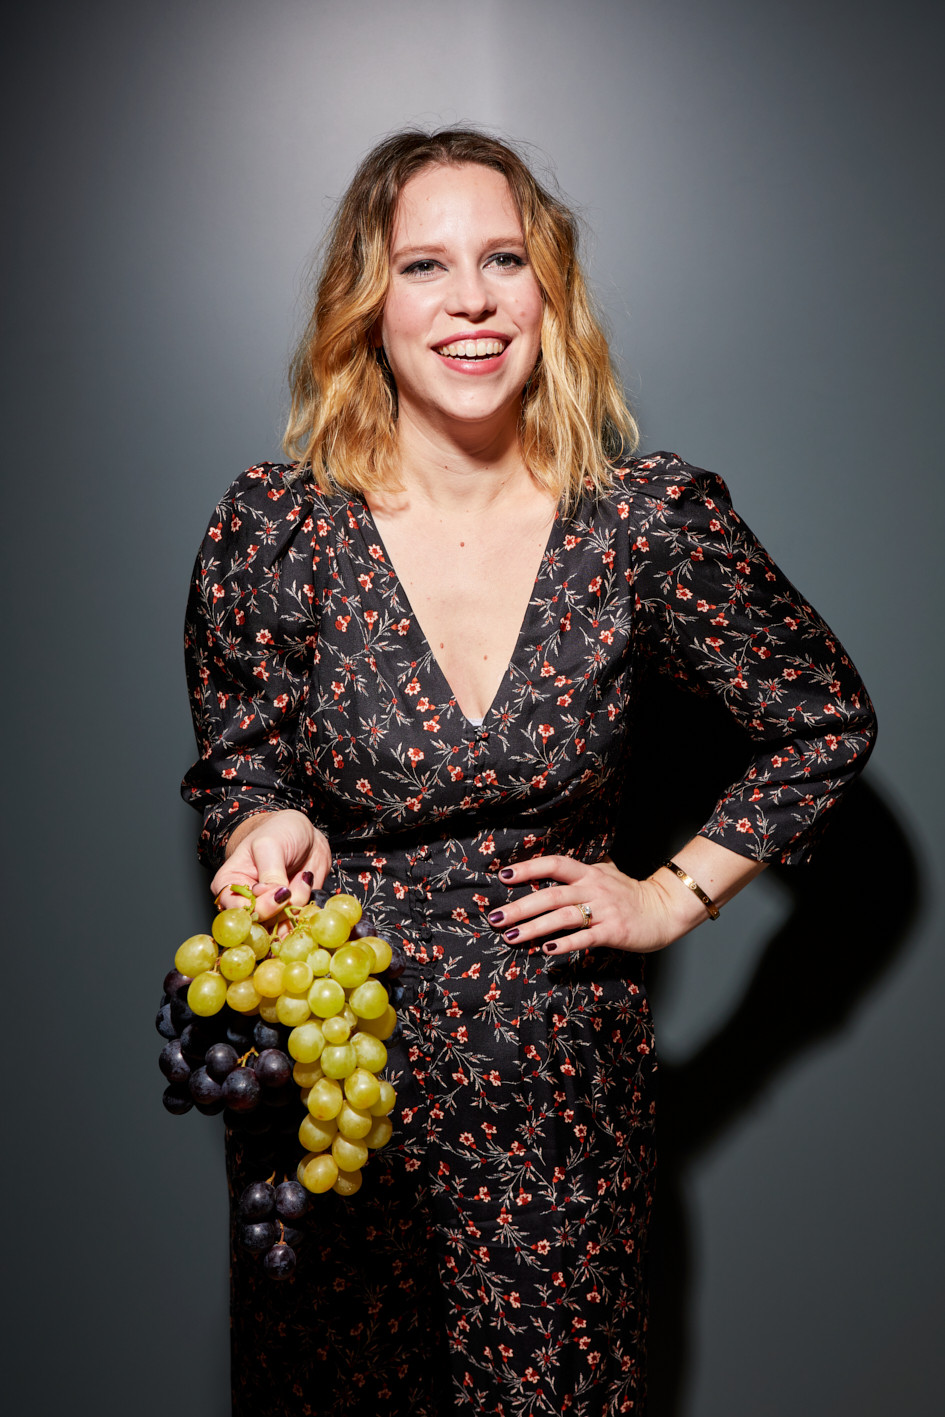 Ally Chapman, fierce feminist, wine enthusiast, and founder of The Femme Vine. hoto by: Patricia Niven    Food Styling: Loïc Parisot